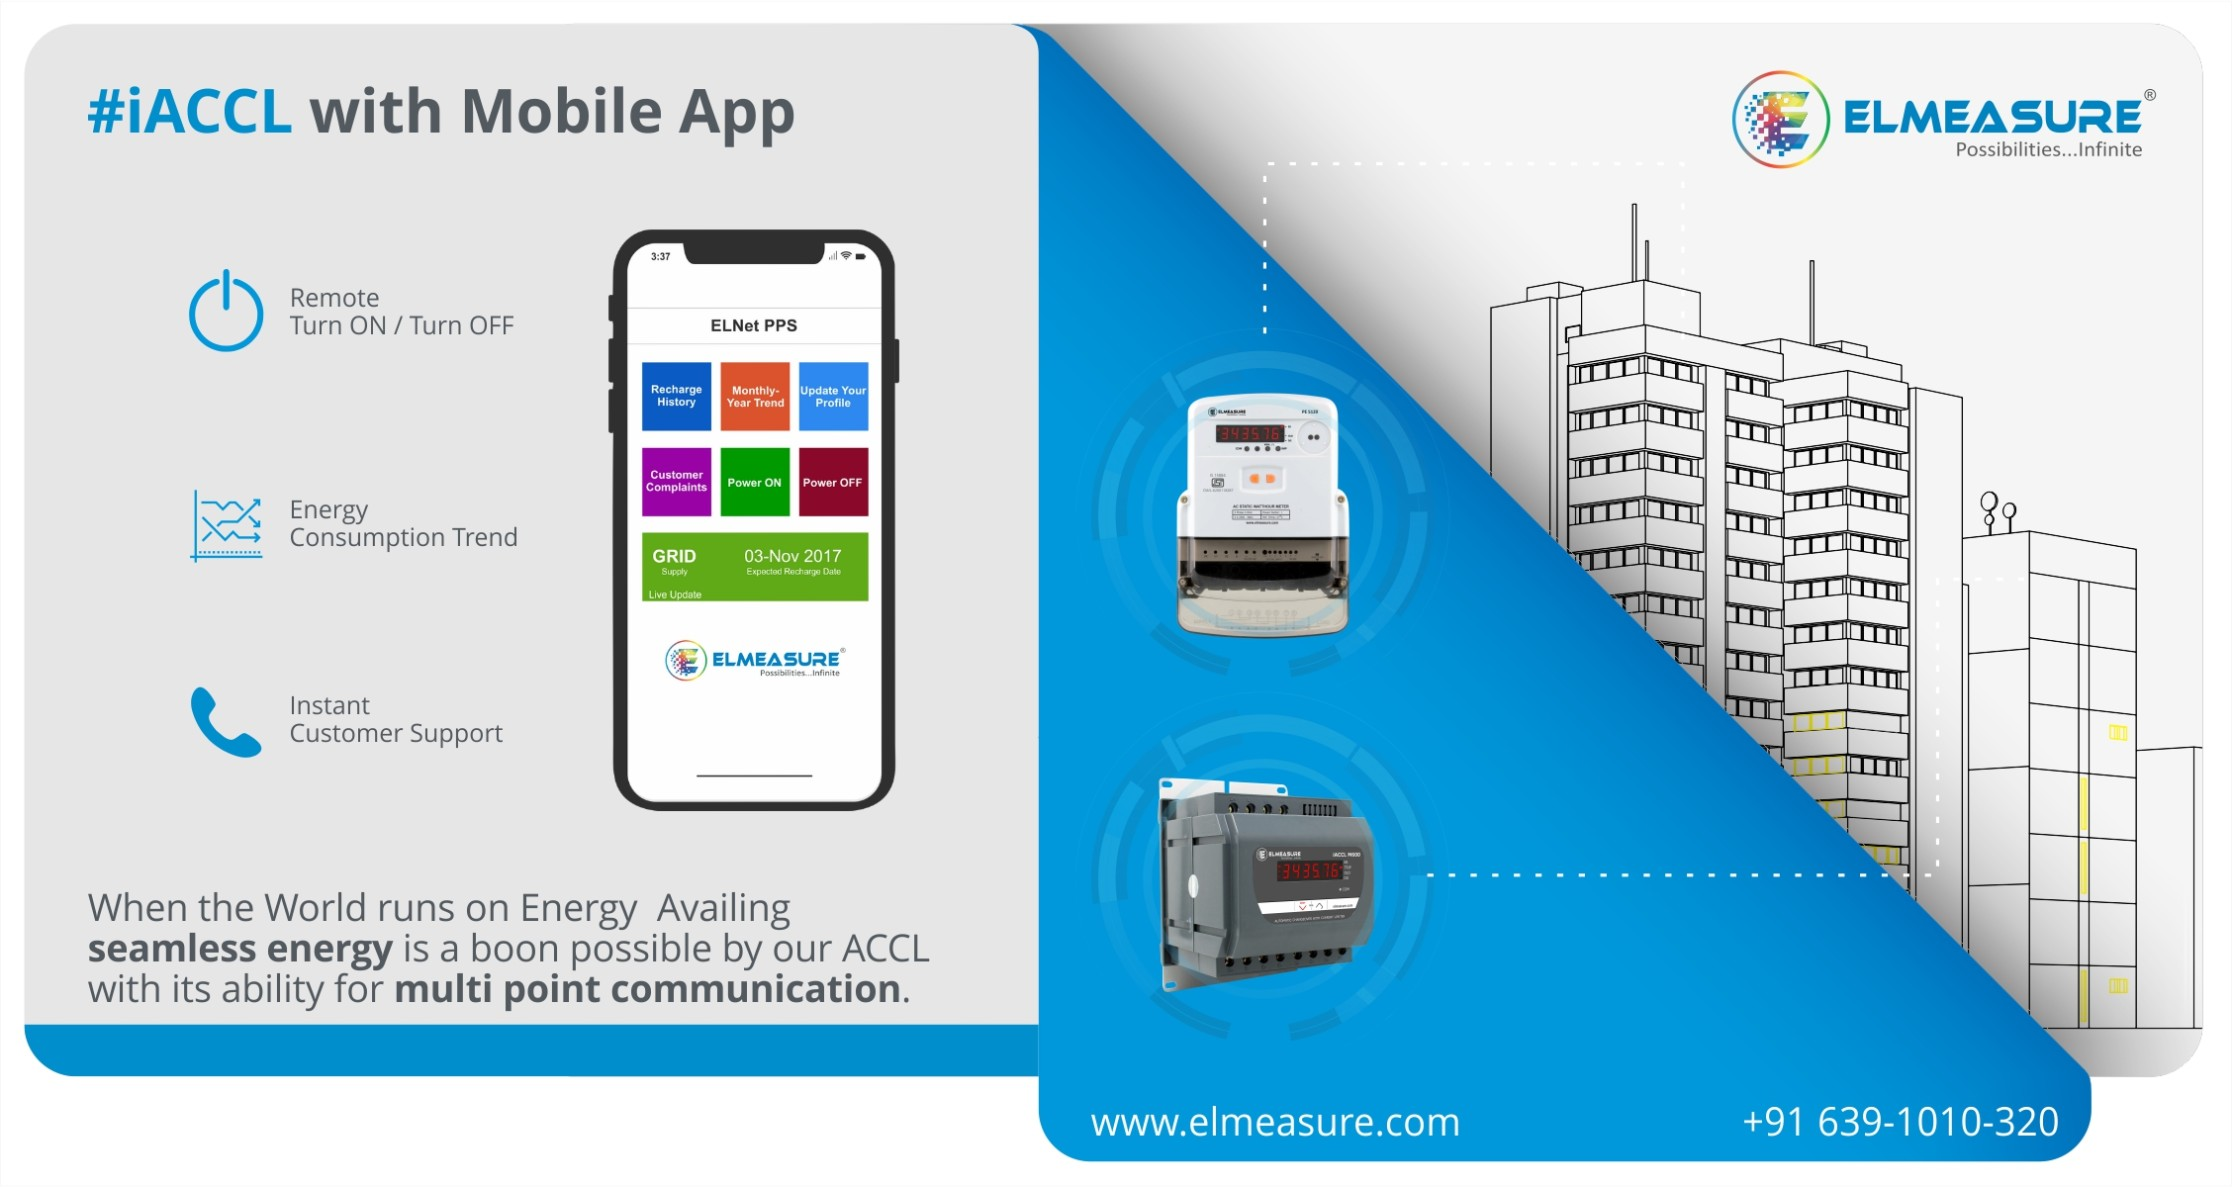 ACCL remotely using Mobile APP